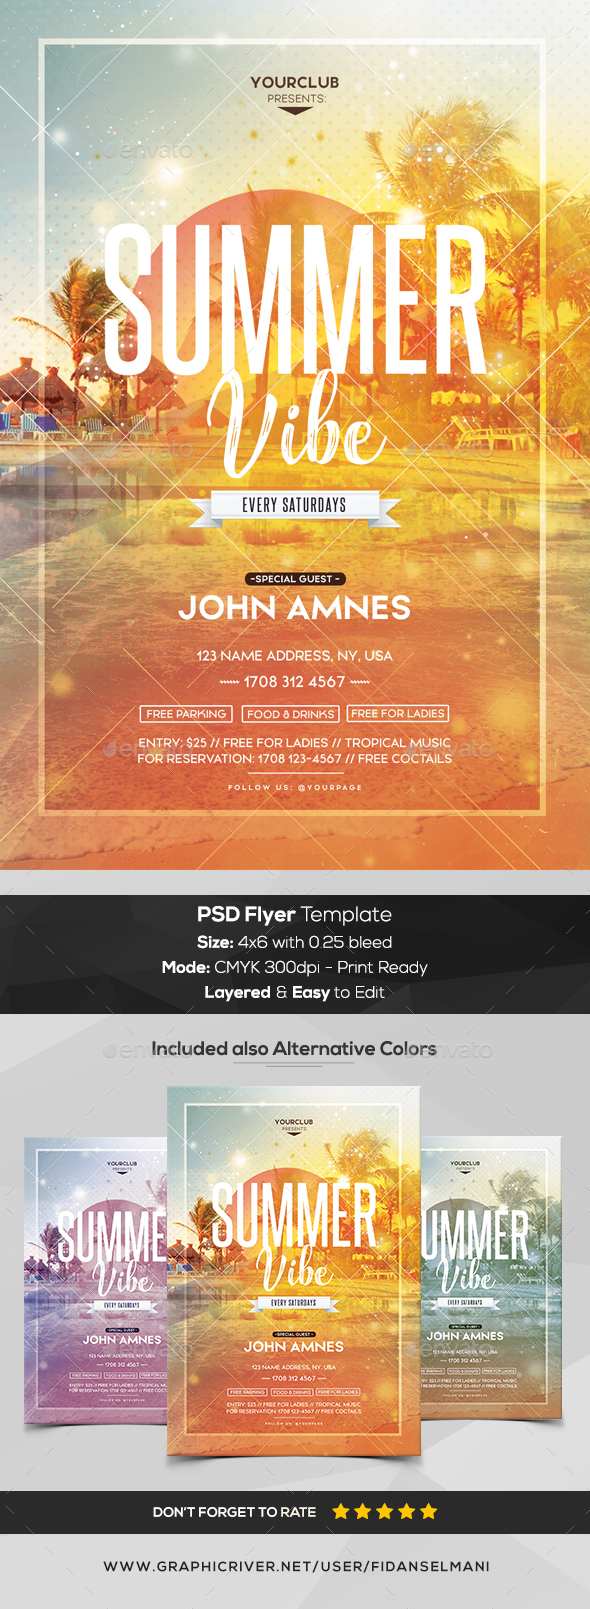 Summer Vibe - PSD Flyer Template - Clubs & Parties Events